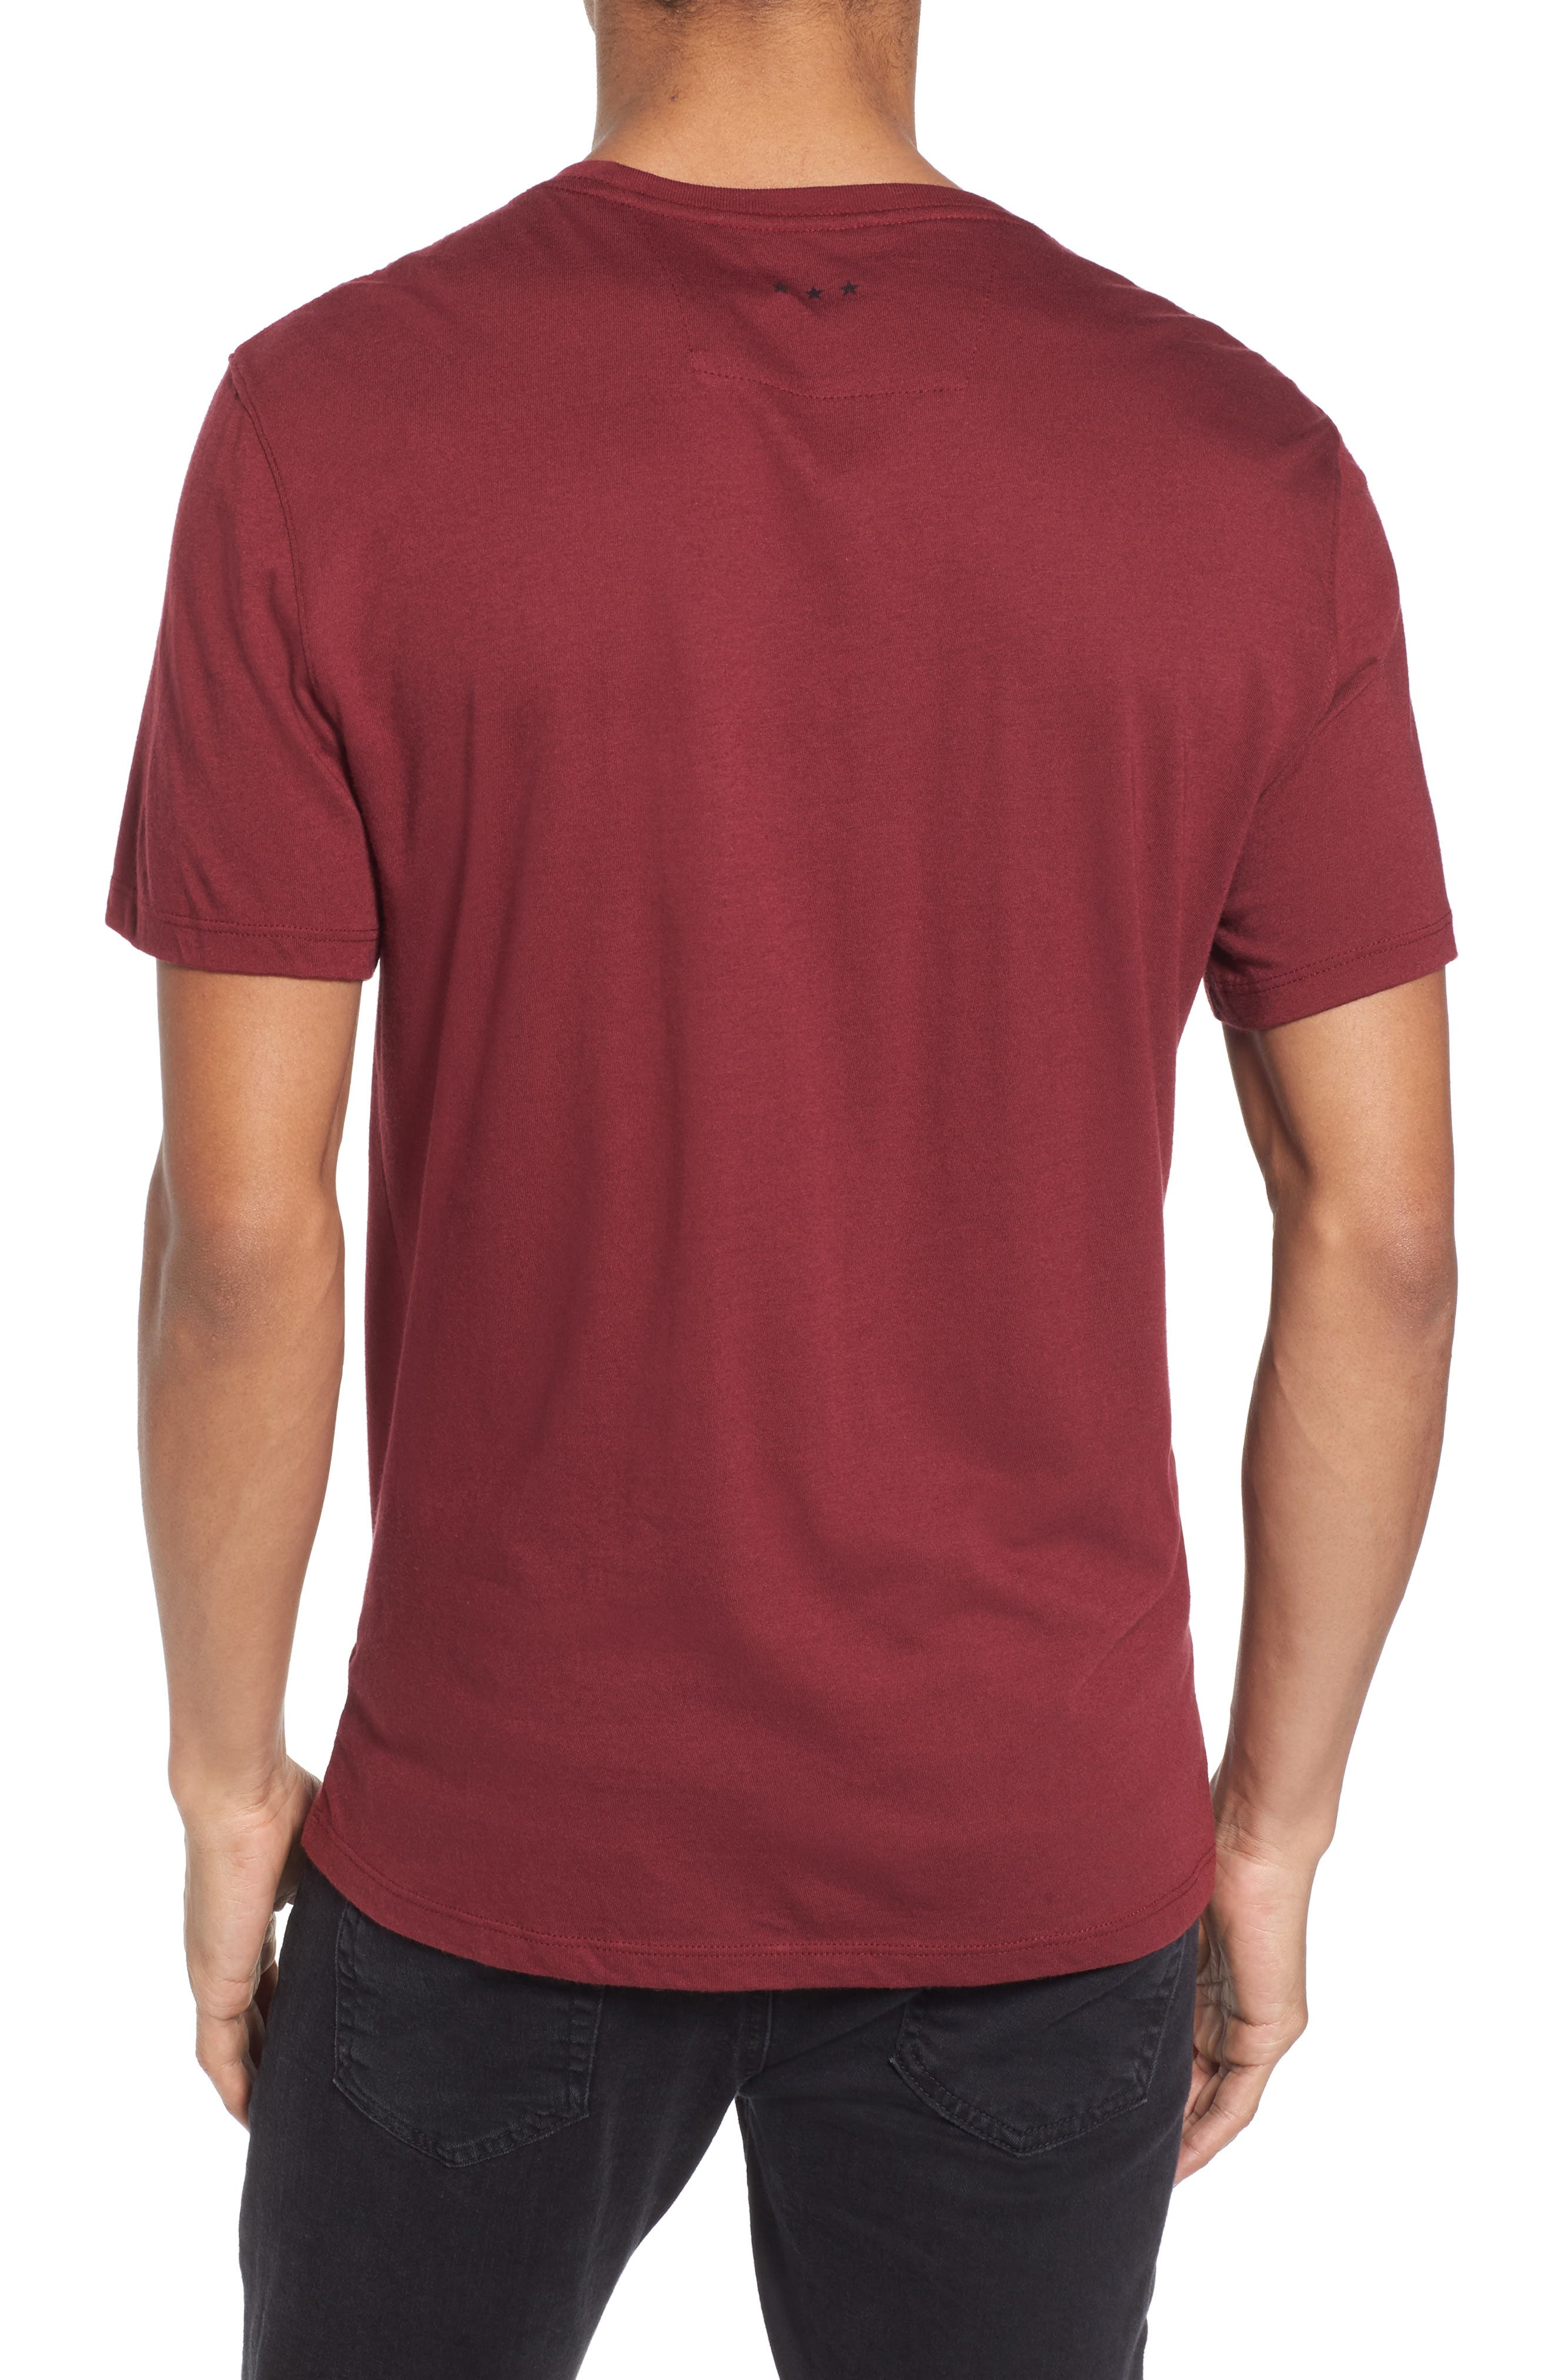 Revolution Graphic T-Shirt,                             Alternate thumbnail 2, color,                             Oxblood